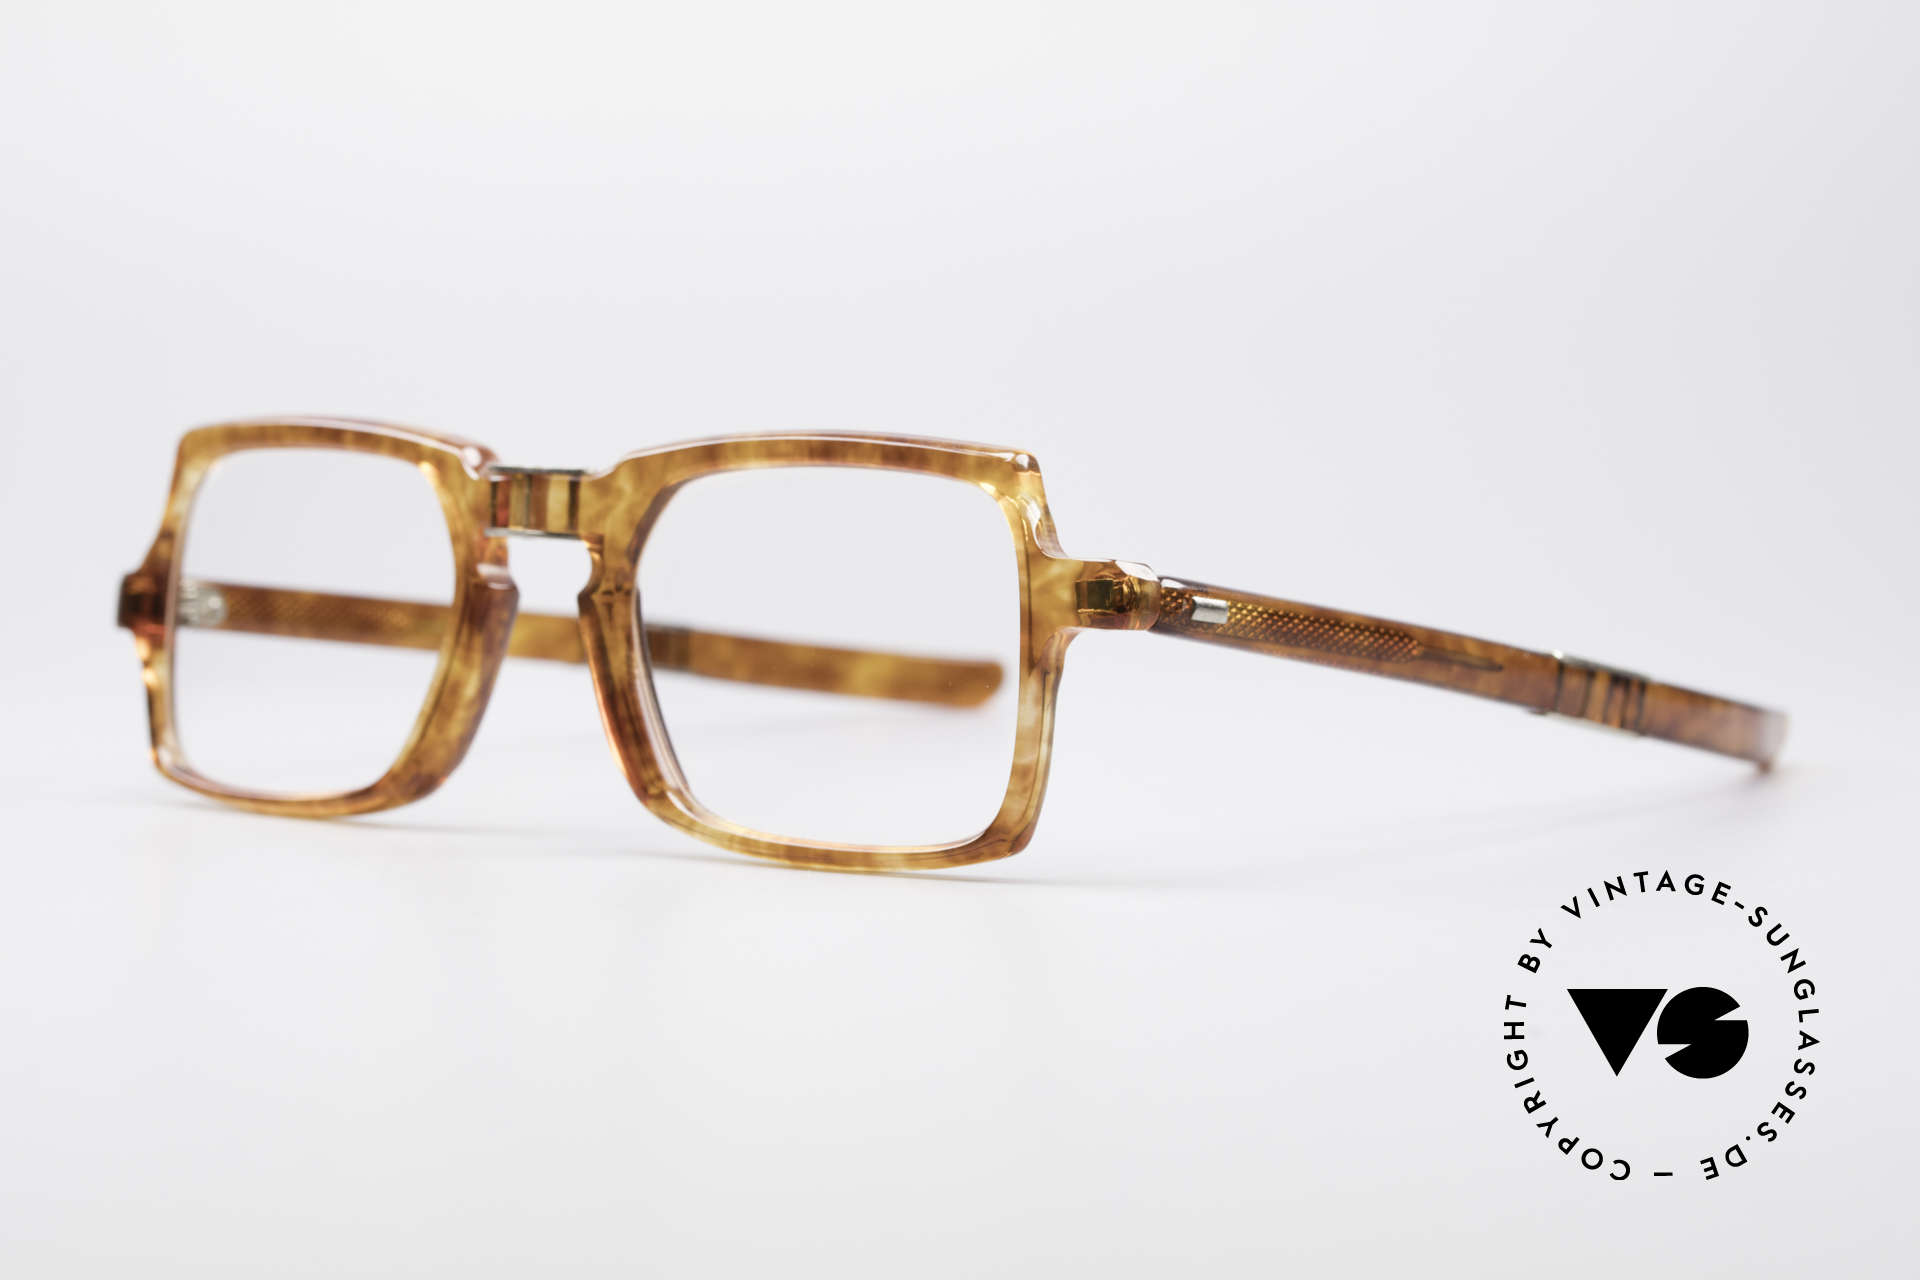 Meyro 618 70's Folding Glasses, the material looks like real Amber; really unique!, Made for Men